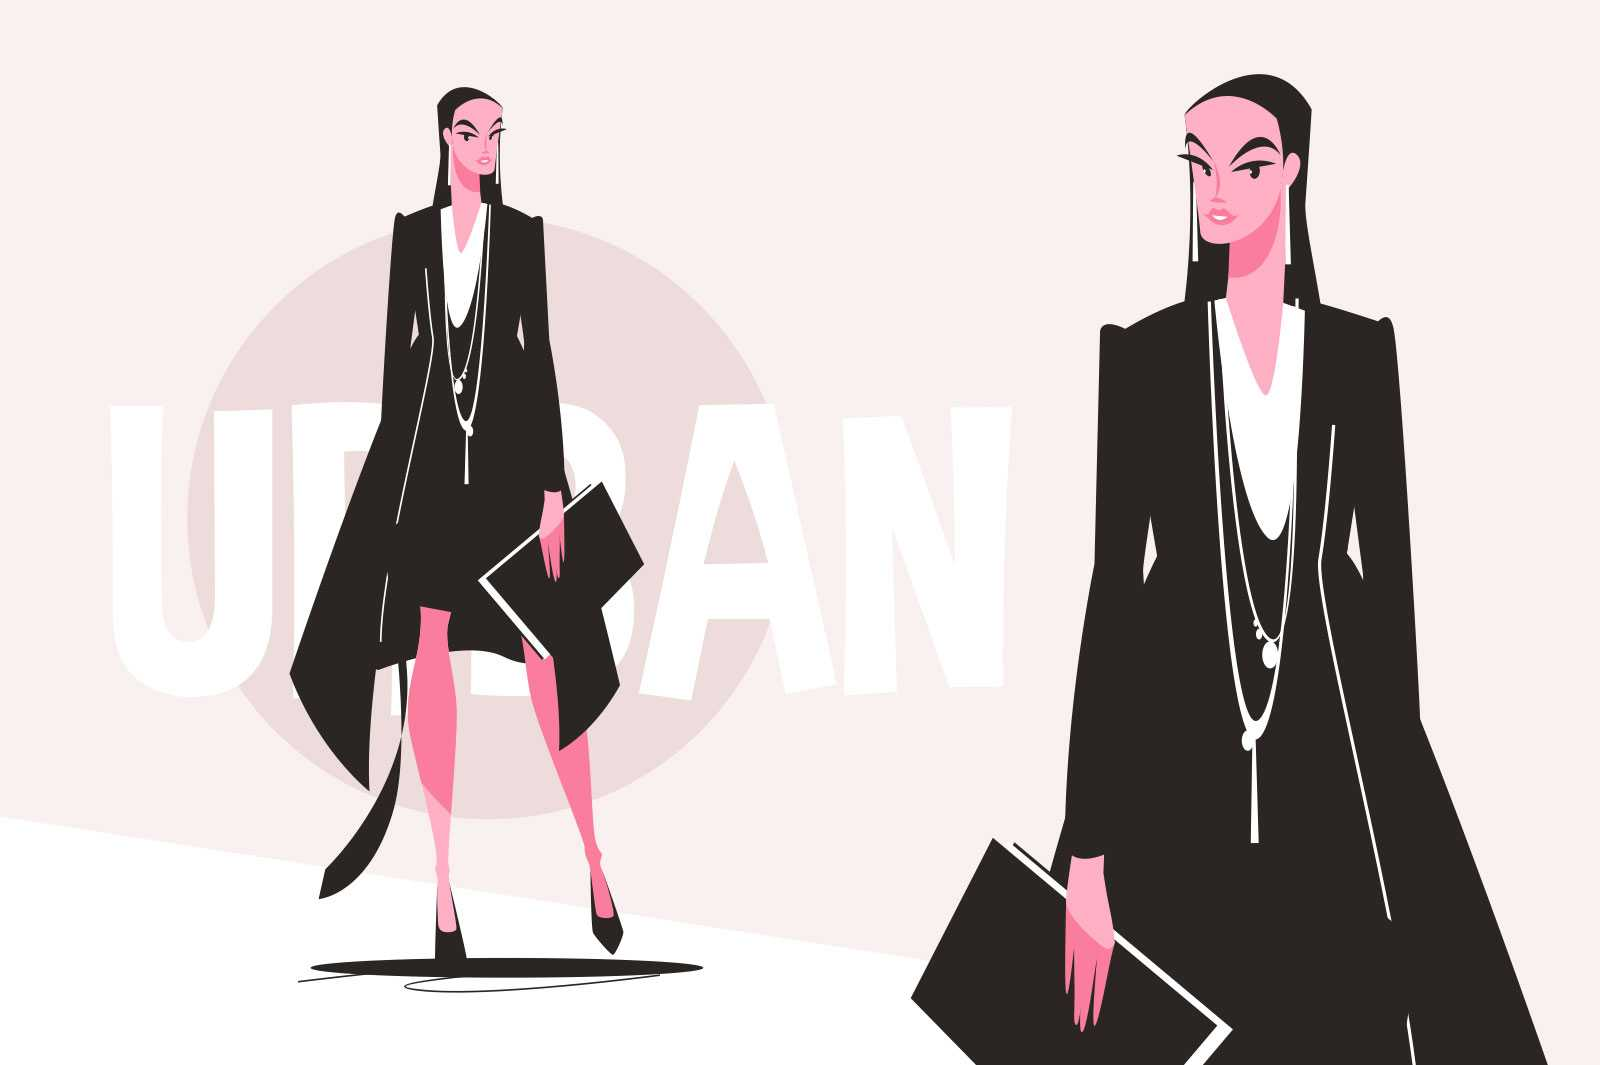 Stylish urban business lady vector illustration. Fashionably dressed woman in black suit flat style. Fashion week and beauty concept. Isolated on pink background